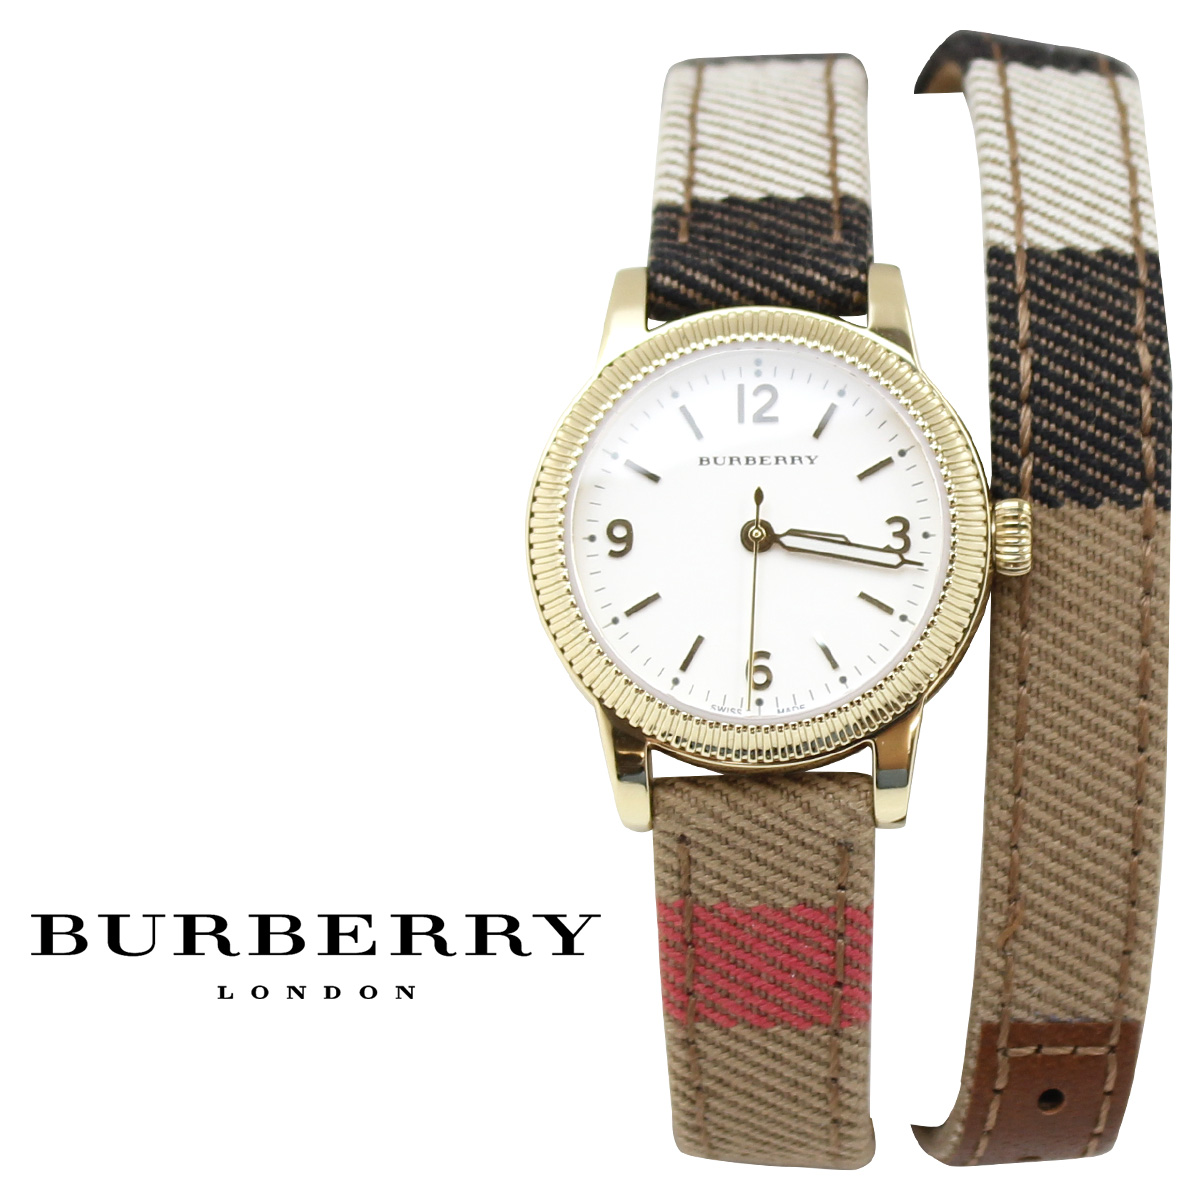 Buy shop burberry watches free shipping for worldwide off31 the largest catalog discounts for Burberry watches